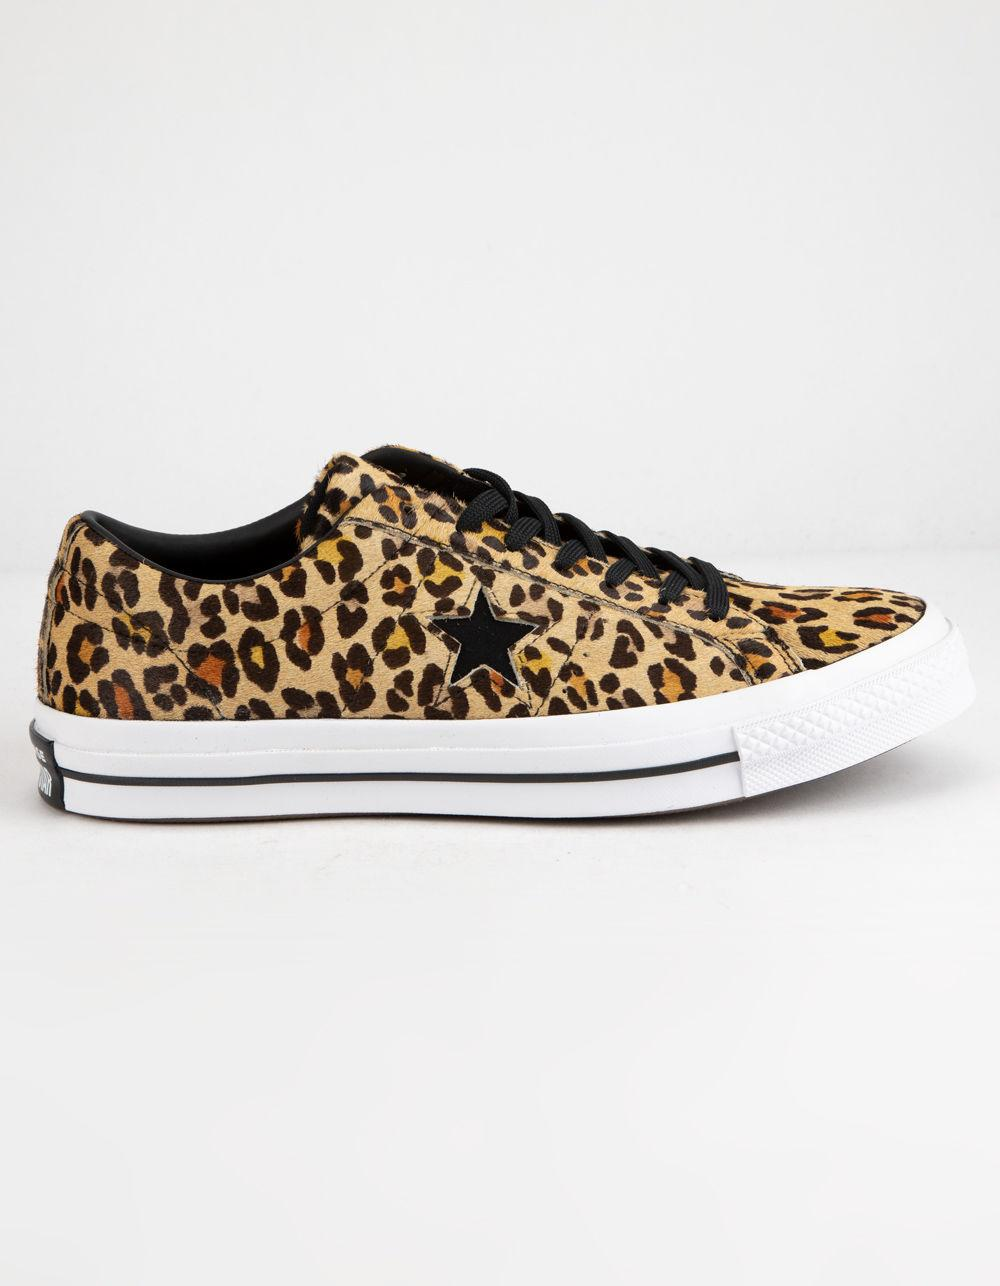 dba79ed81ebb Lyst - Converse One Star Ox Leopard Shoes